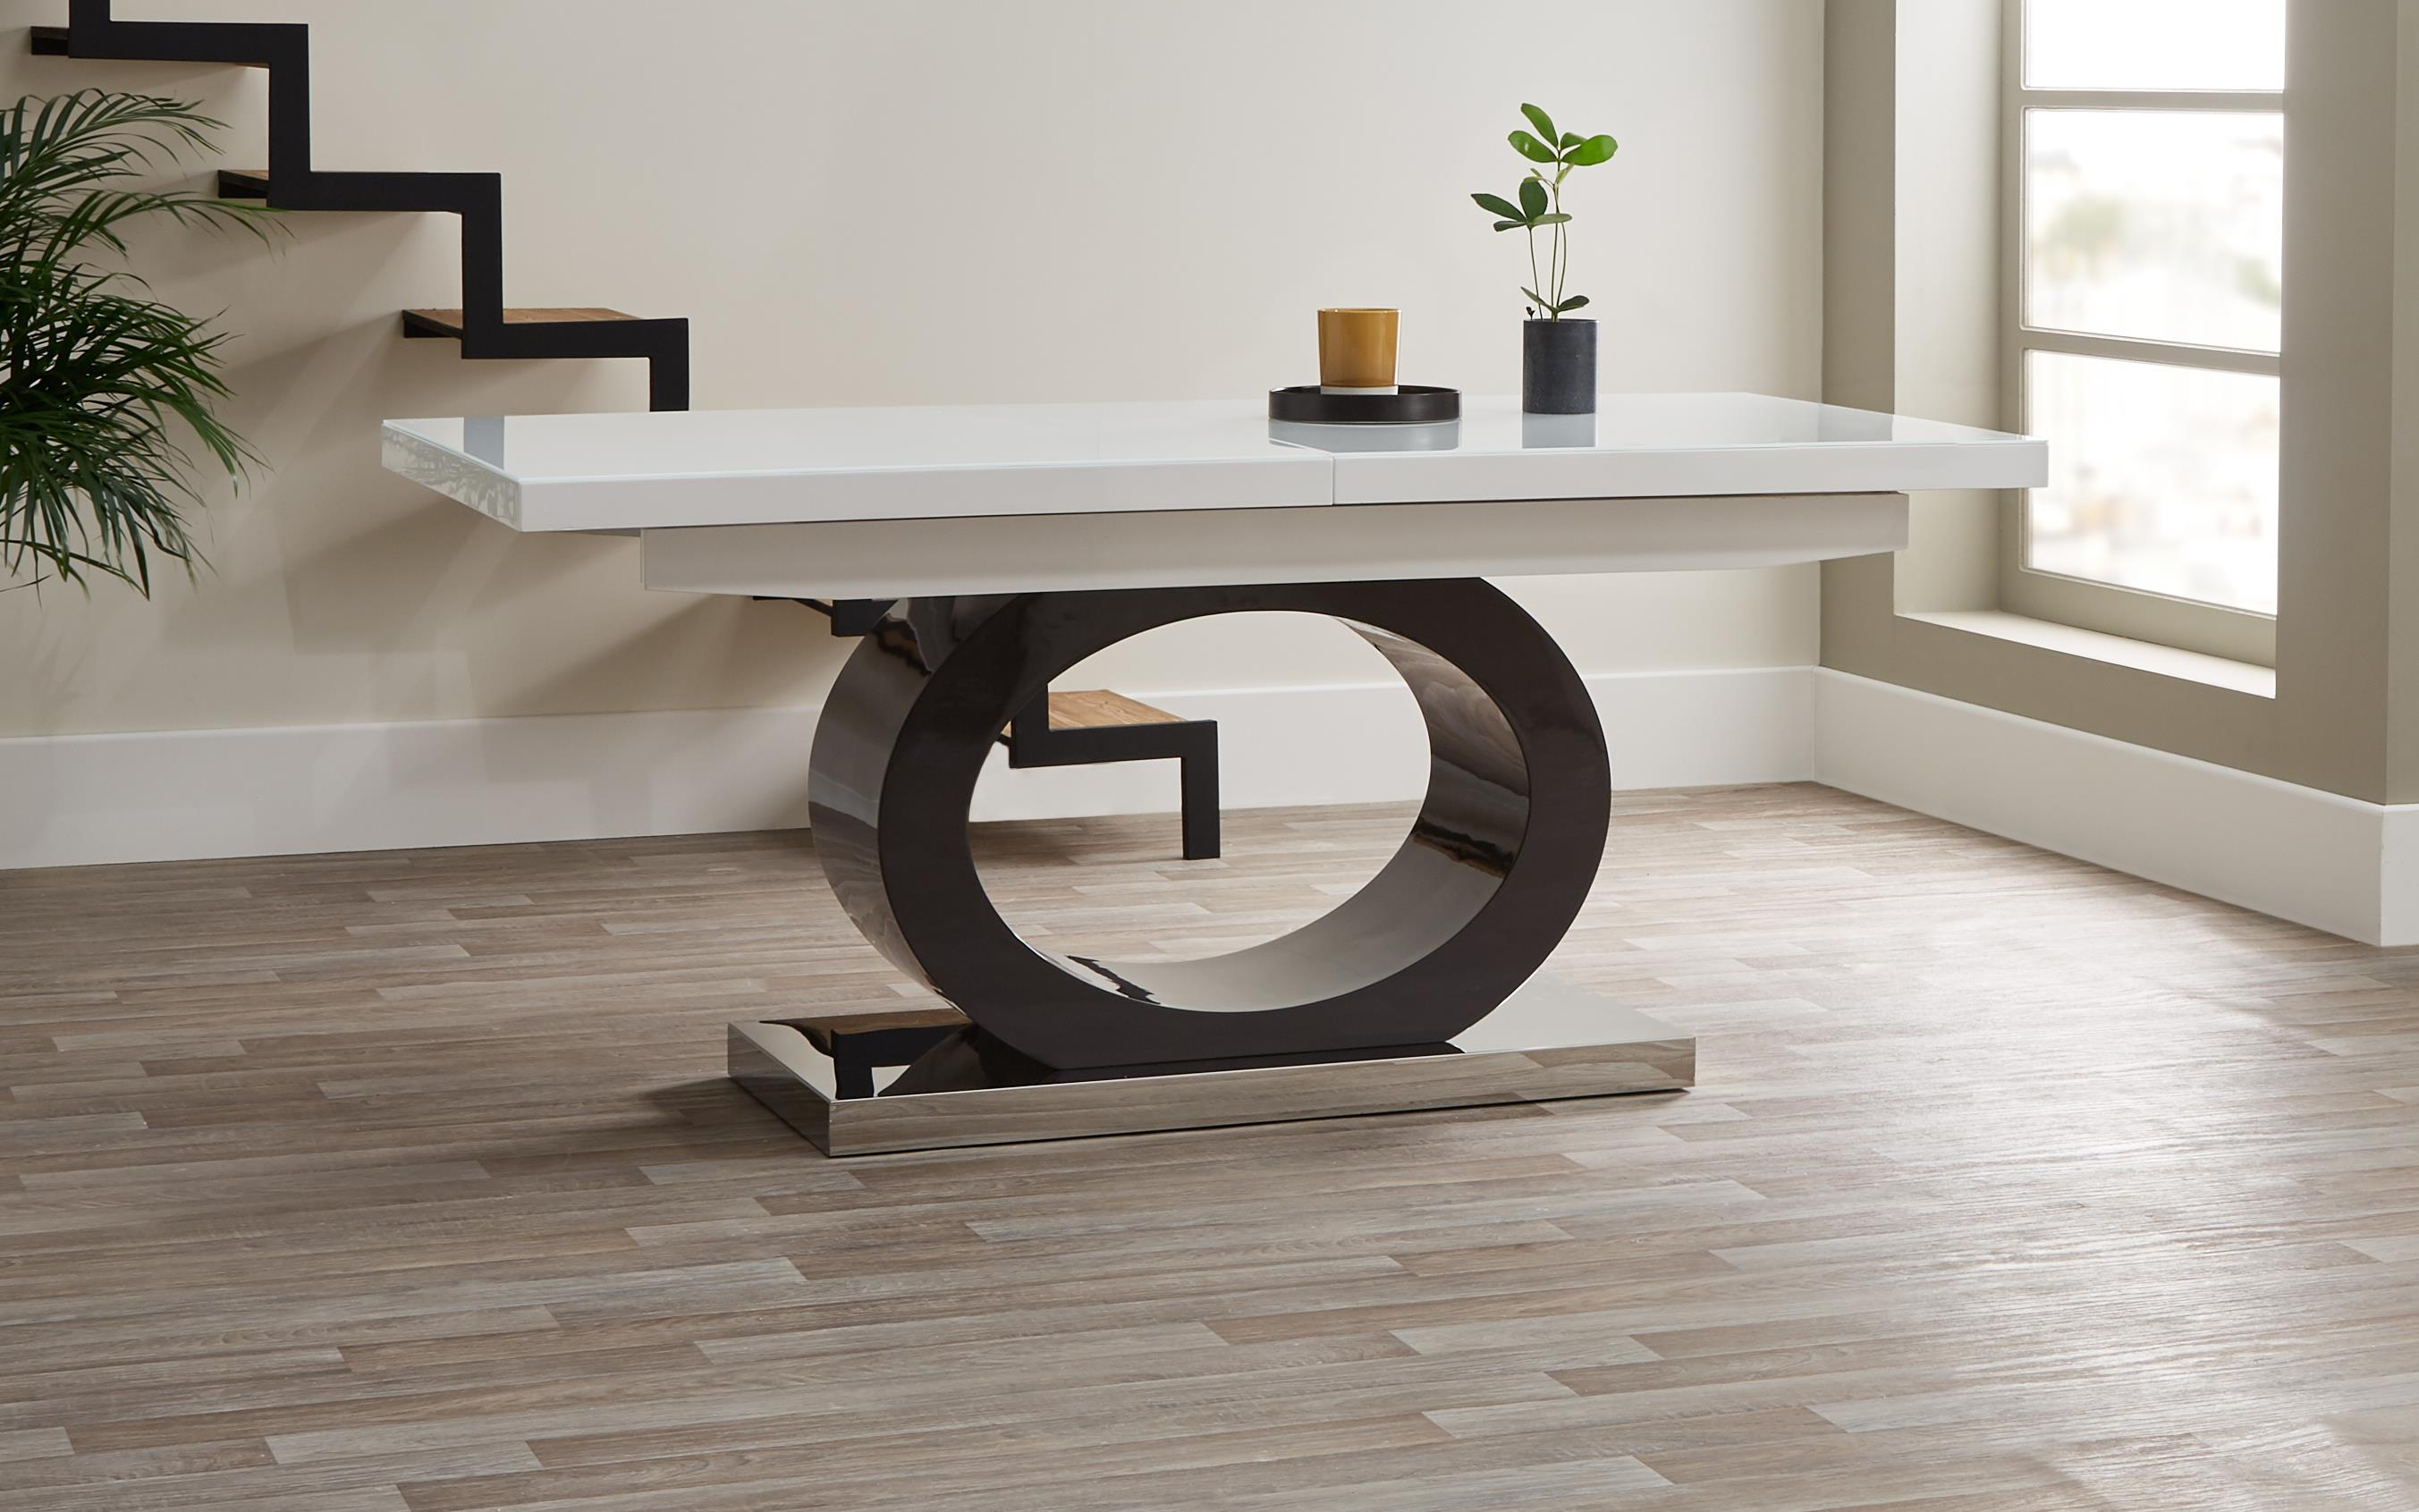 Tokyo White & Grey Dining Table